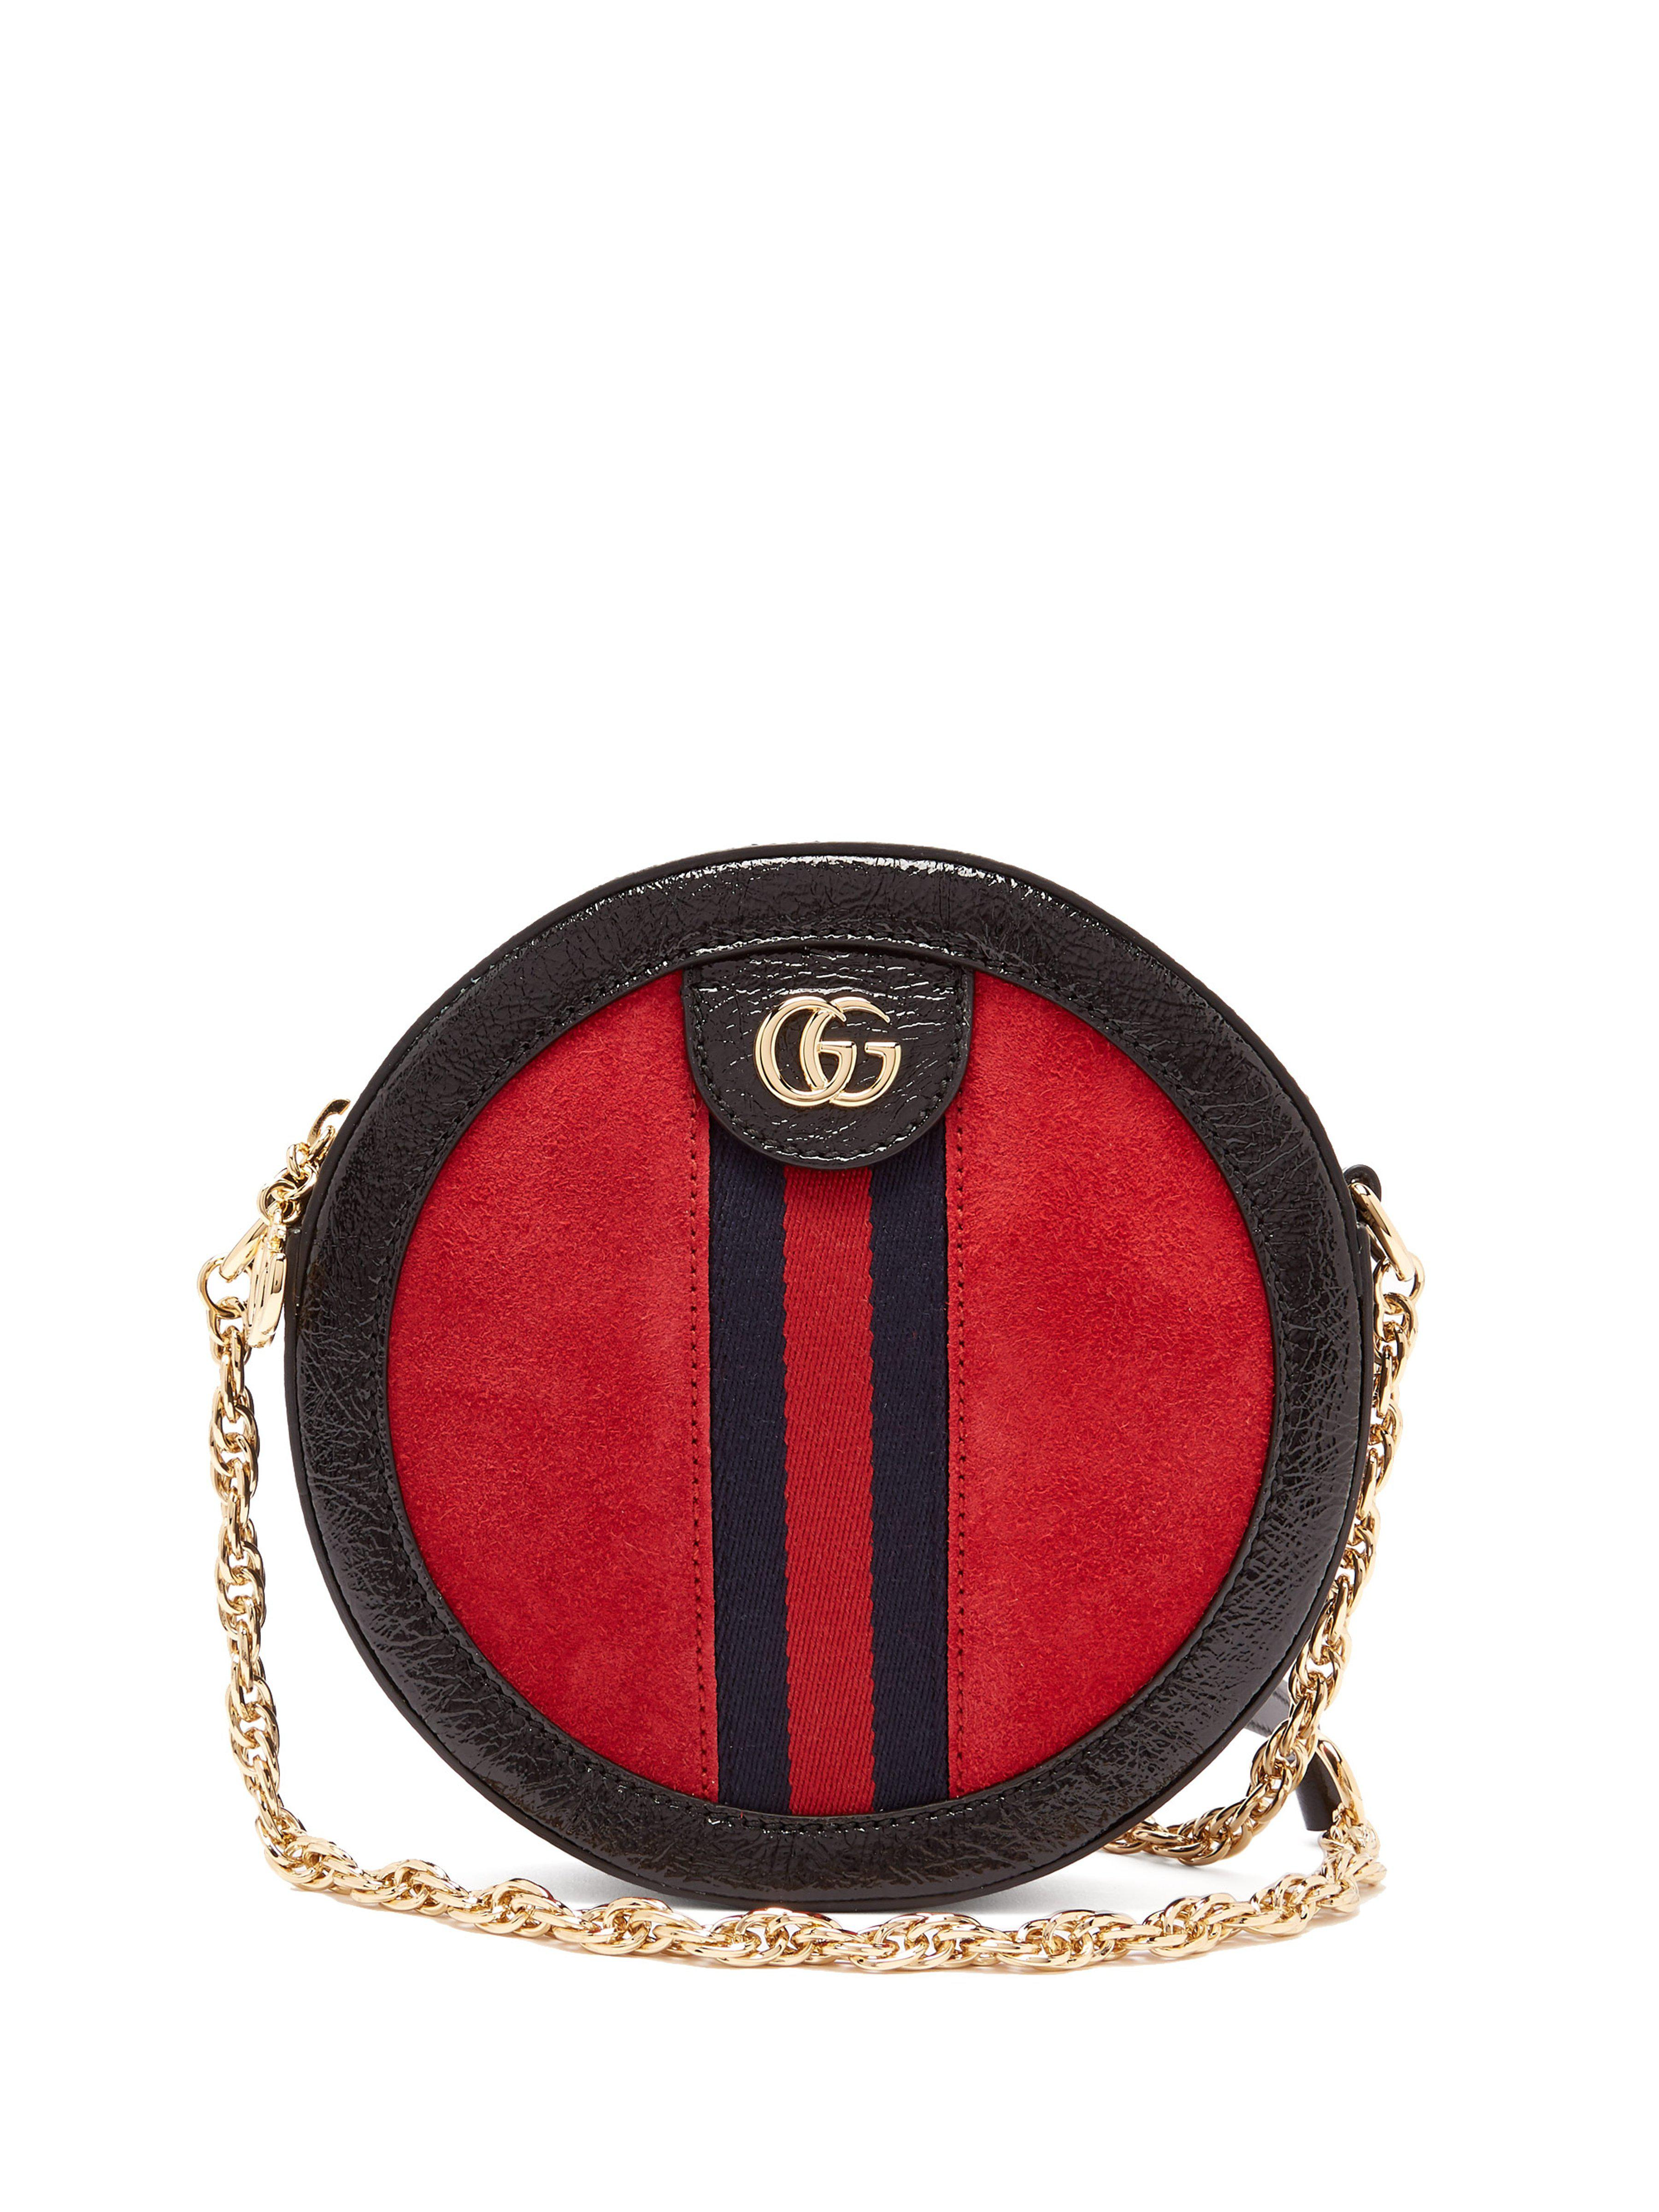 67cc901a9aae77 Gucci Ophidia Gg Leather And Suede Cross Body Bag in Red - Lyst